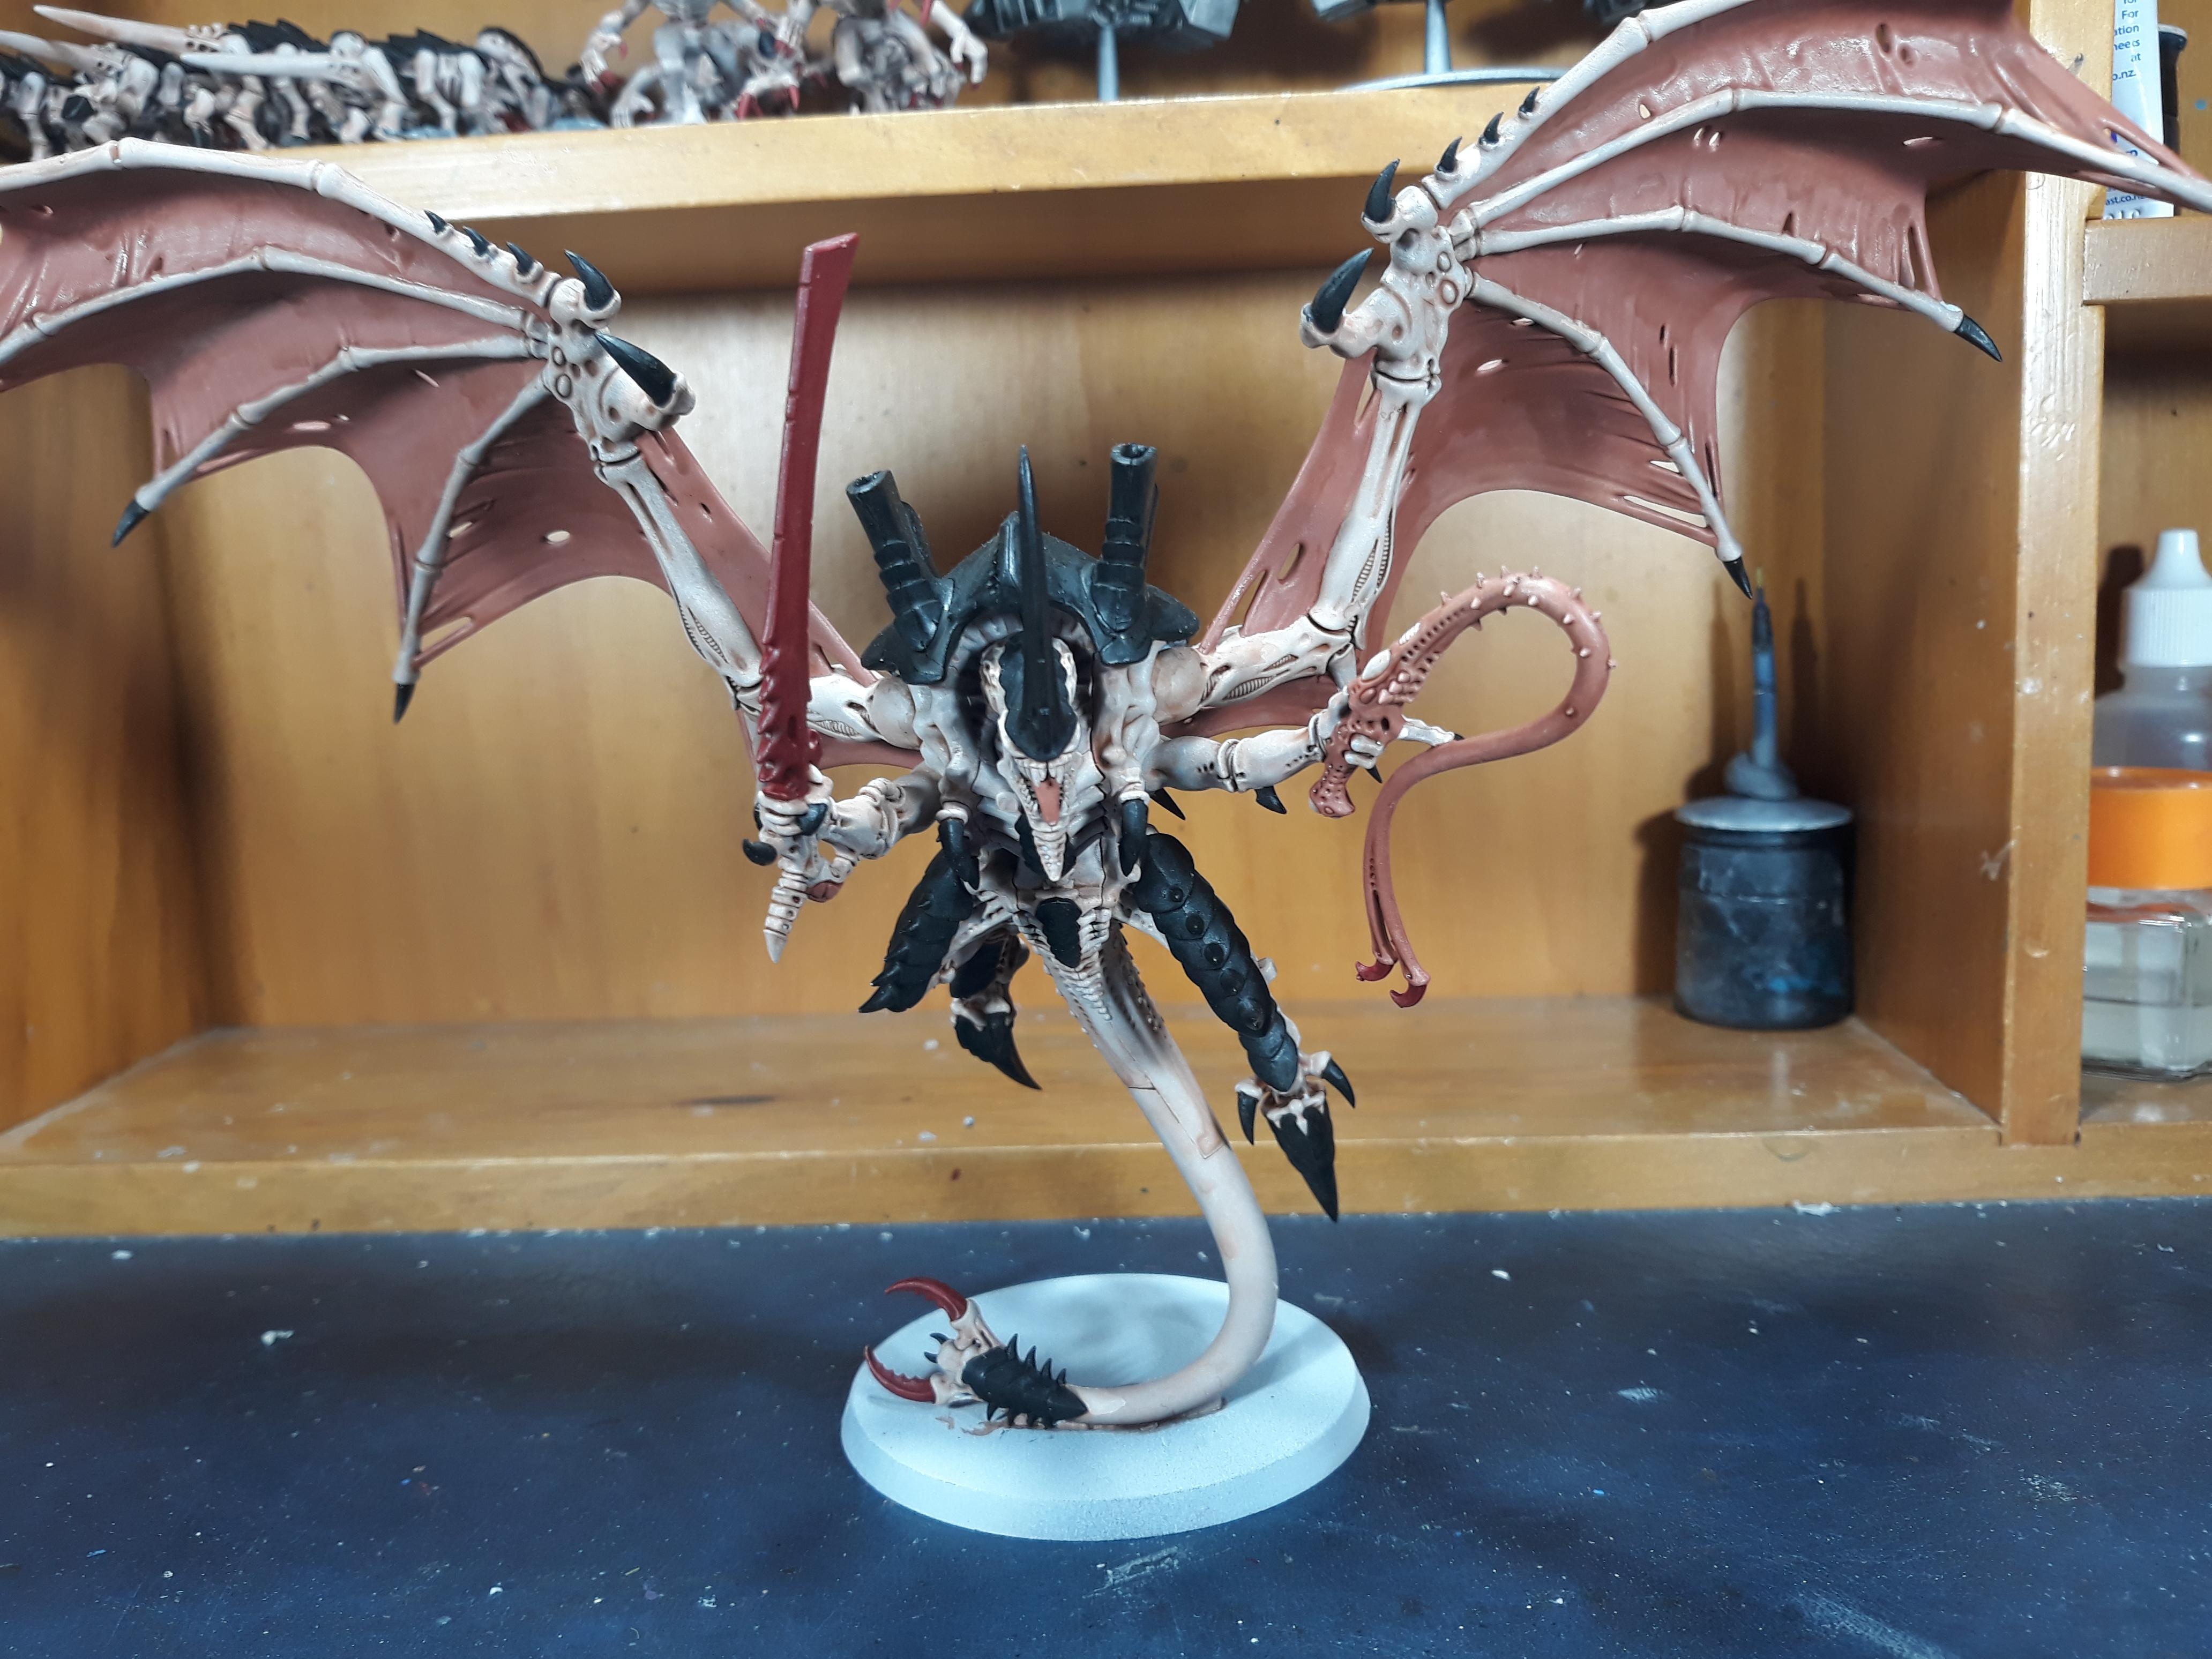 Flying Hive Tyrant done with sword/whip